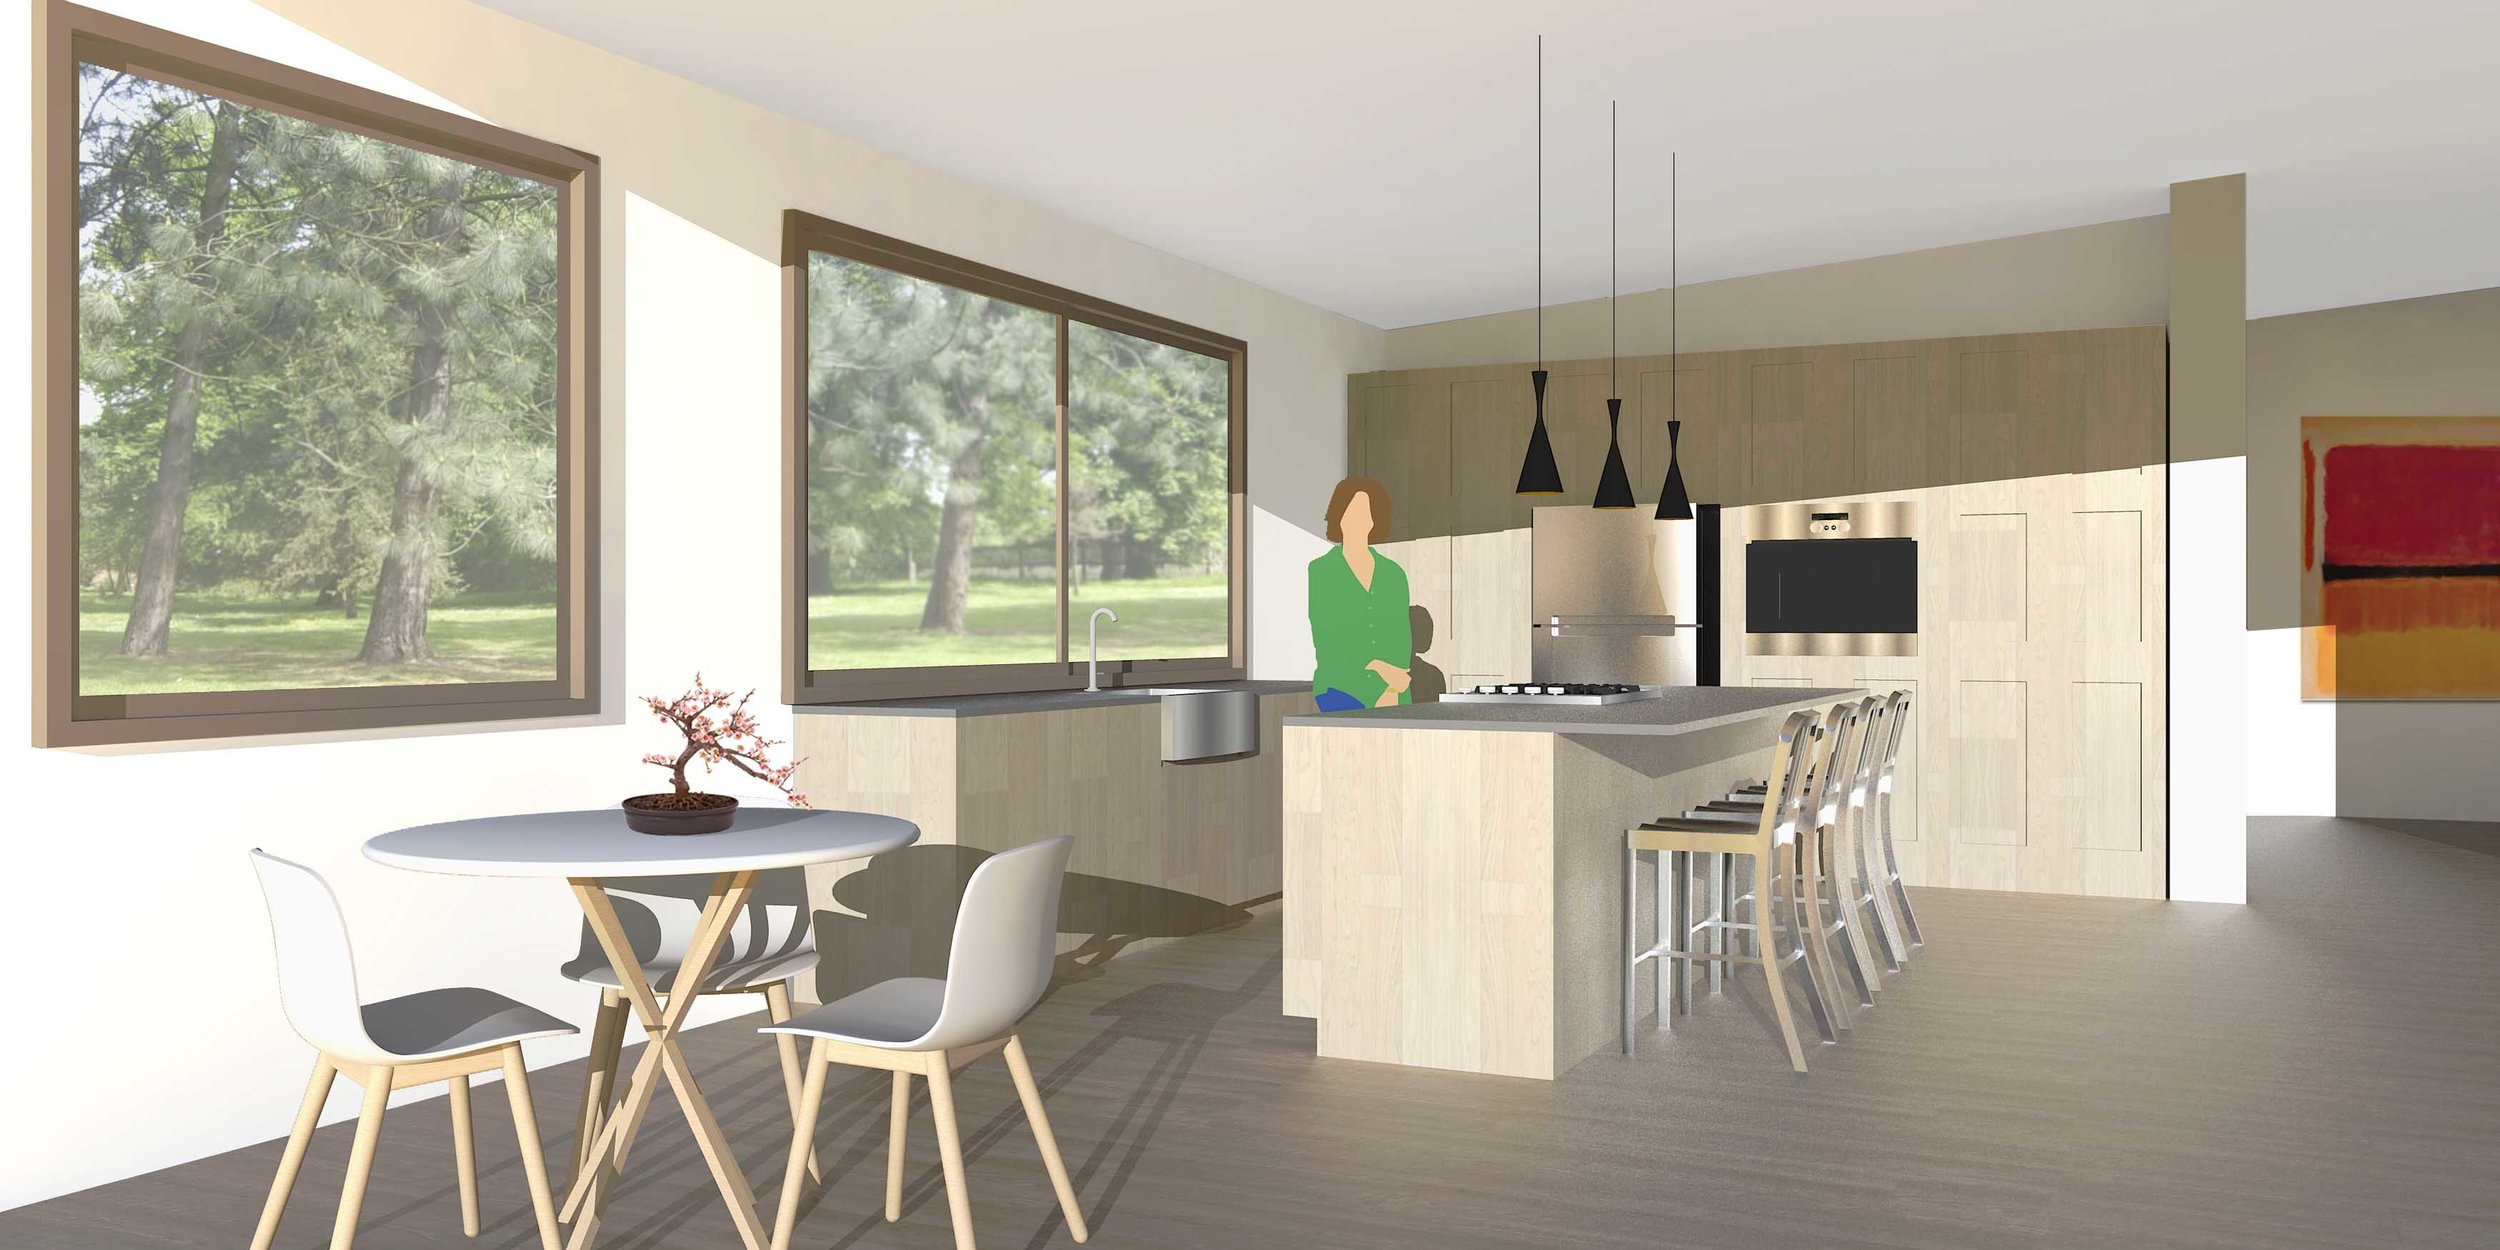 element updated kitchen 02.jpg